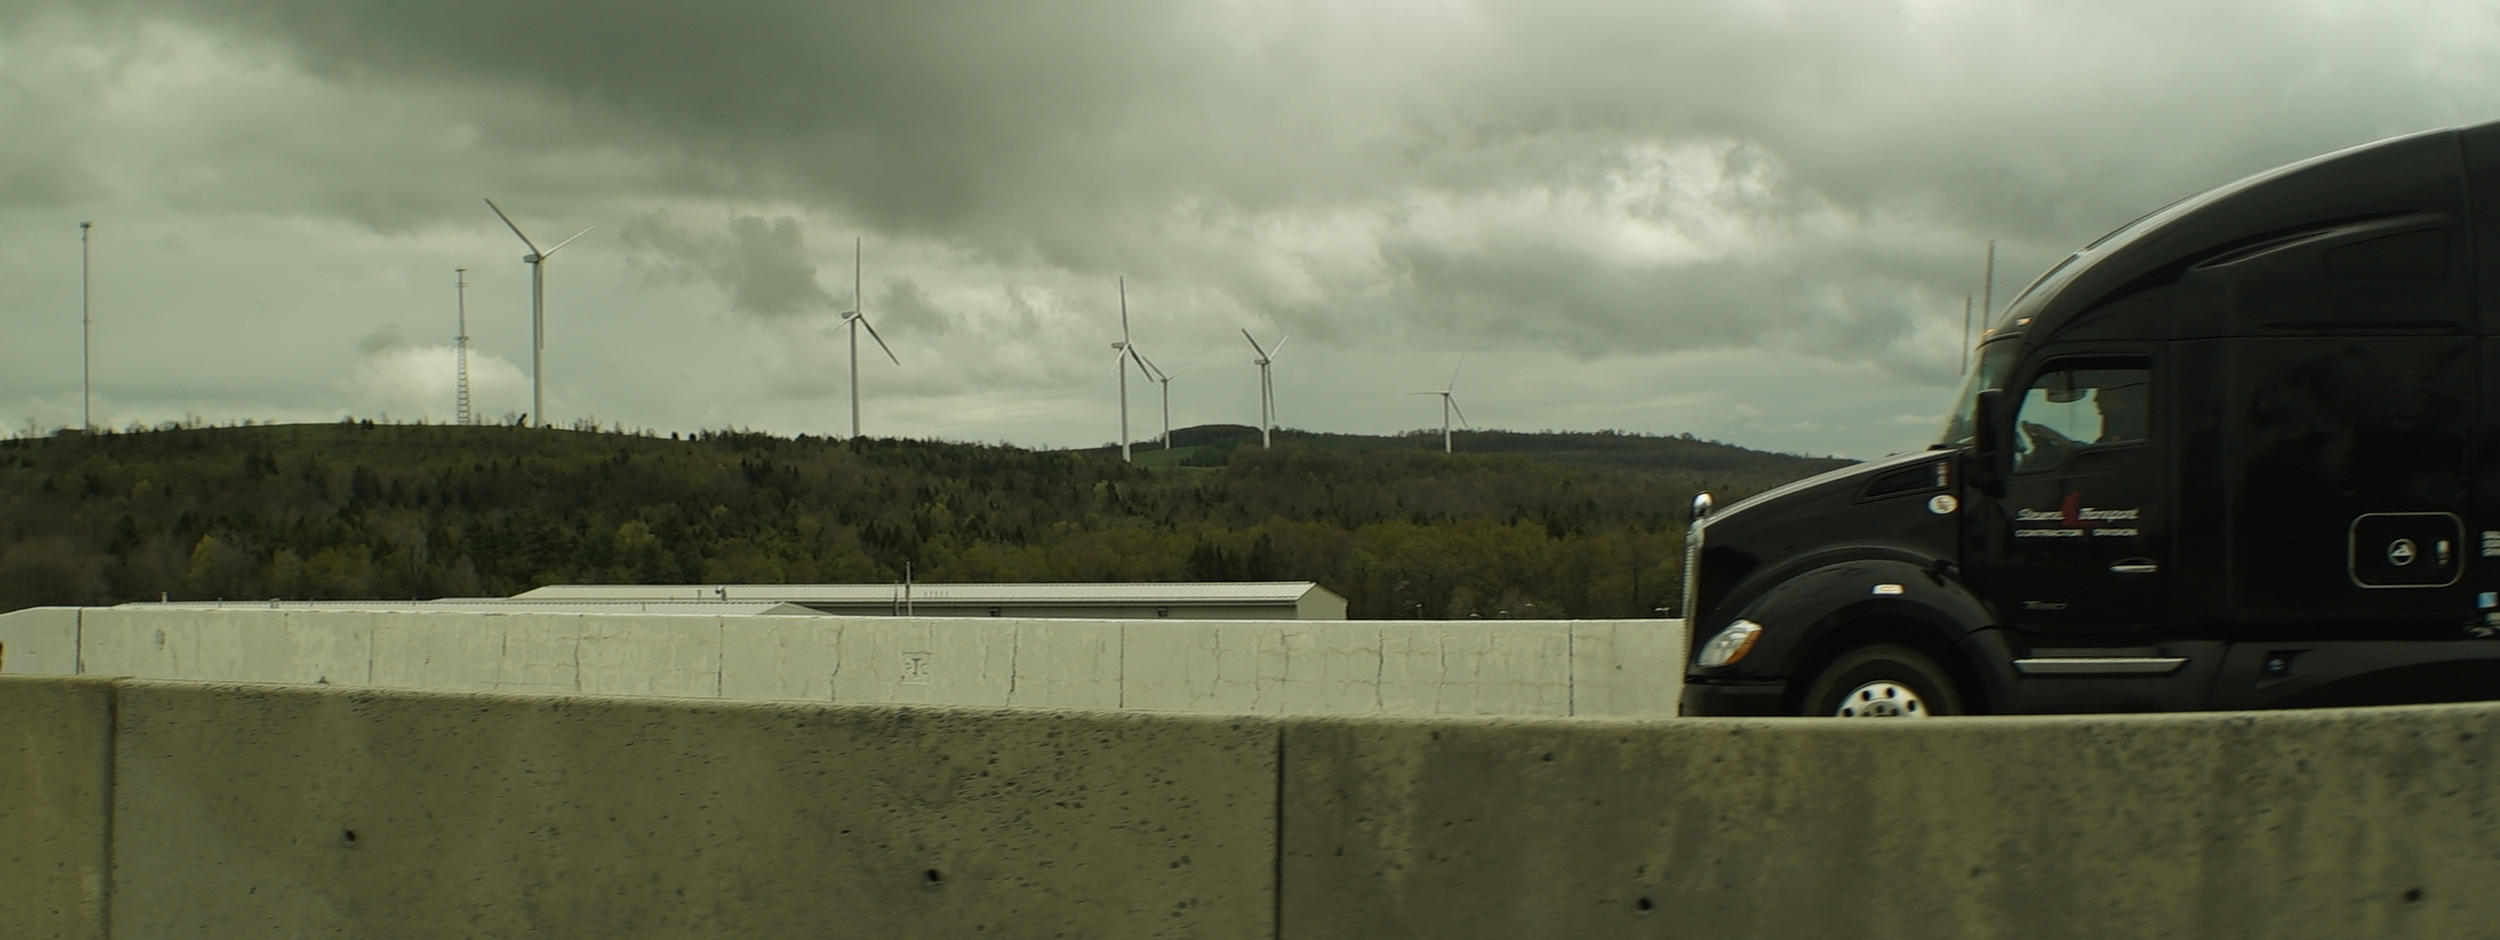 Elite 24.5mm anamorphic | Wind Farm - Image captured at T4.0. Photo by Keith Nickoson.